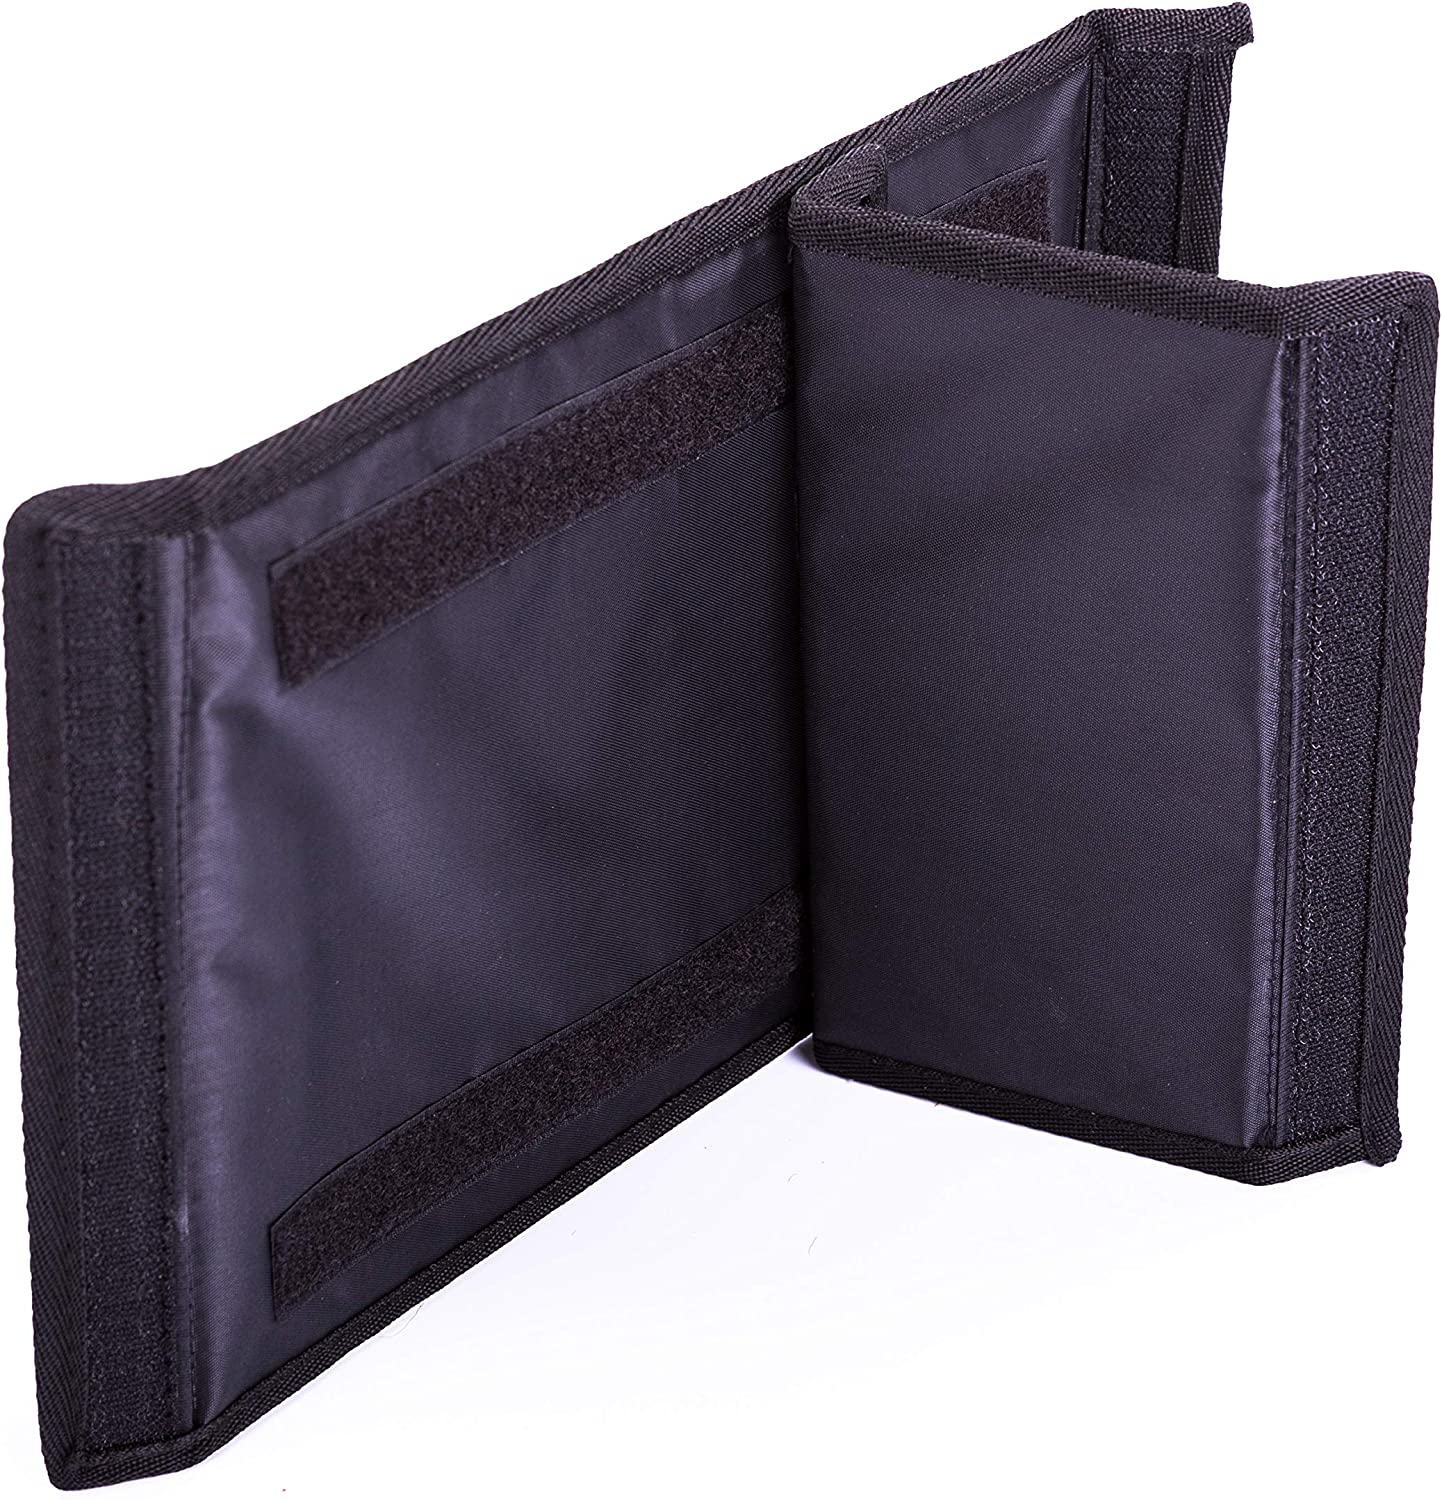 TRUNKCRATEPRO Trunk Organizer Dividers Only - Exclusive to Our Organizers (Black)